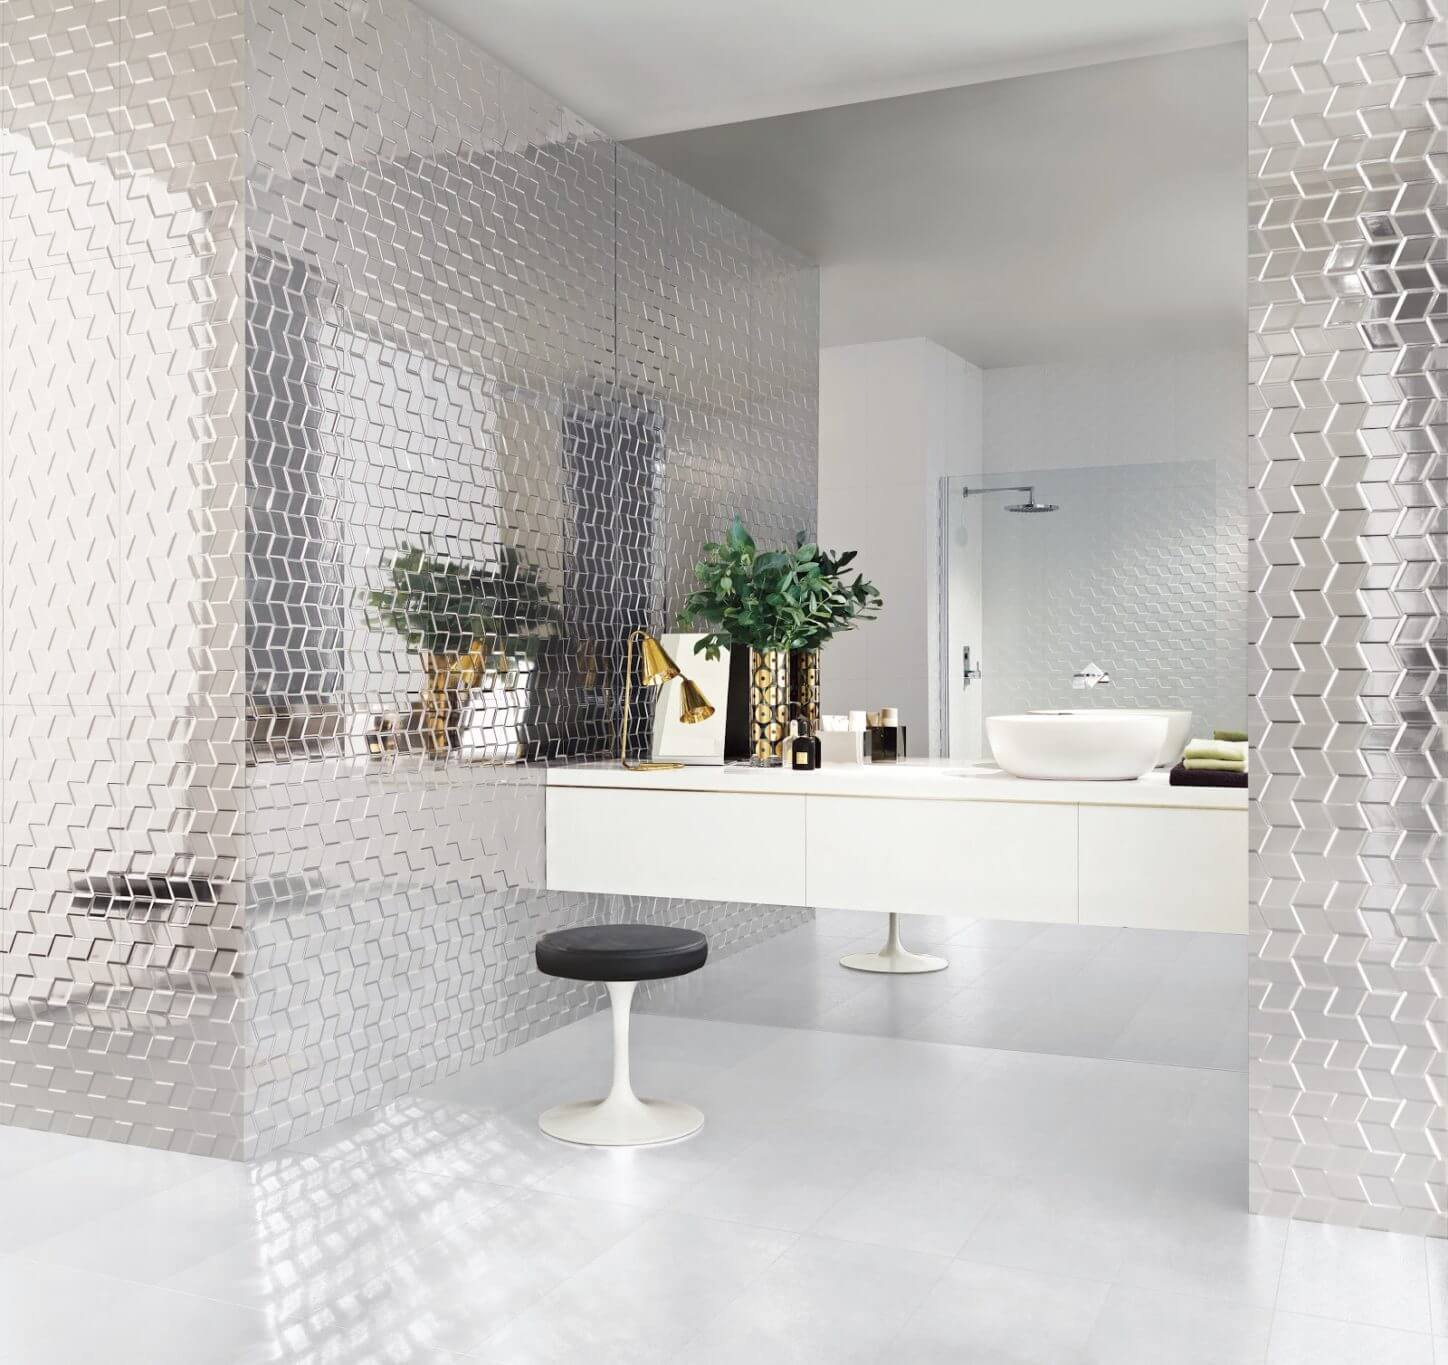 Bathroom Tile: 40 Free Shower Tile Ideas (Tips For Choosing Tile)